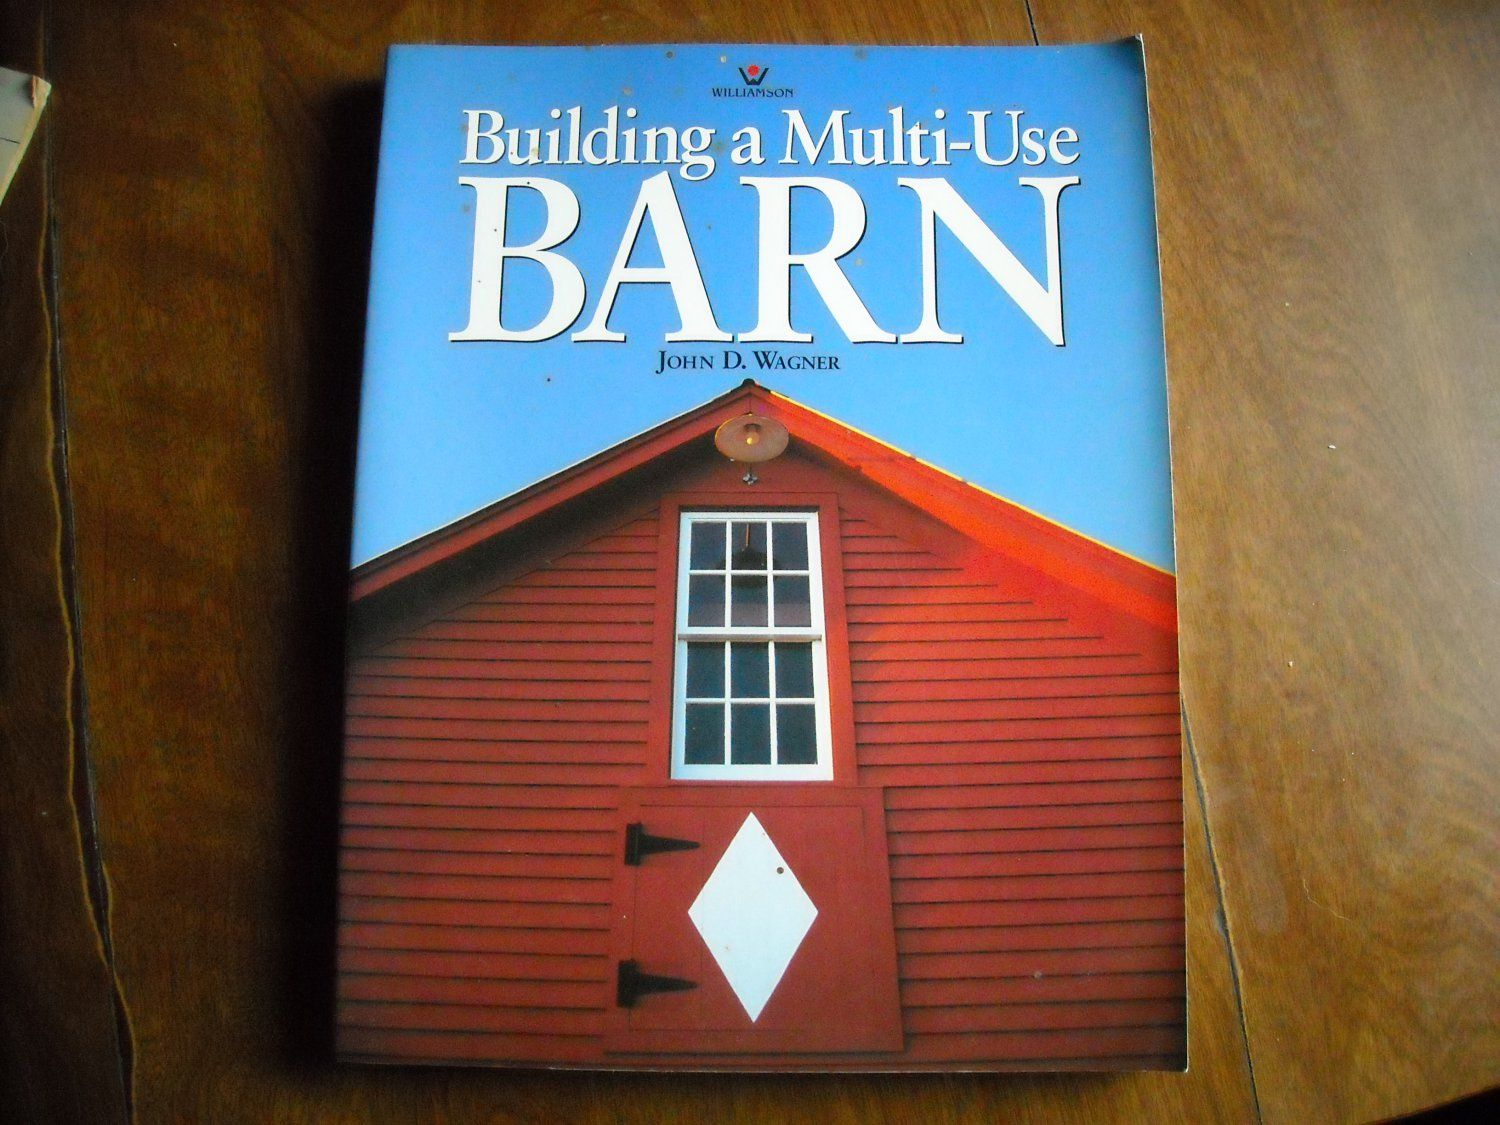 Building a Multi-Use Barn: For Garage, Animals, Workshop, or Studio John D. Wagner - for sale at Wenzel Thrifty Nickel ecrater store